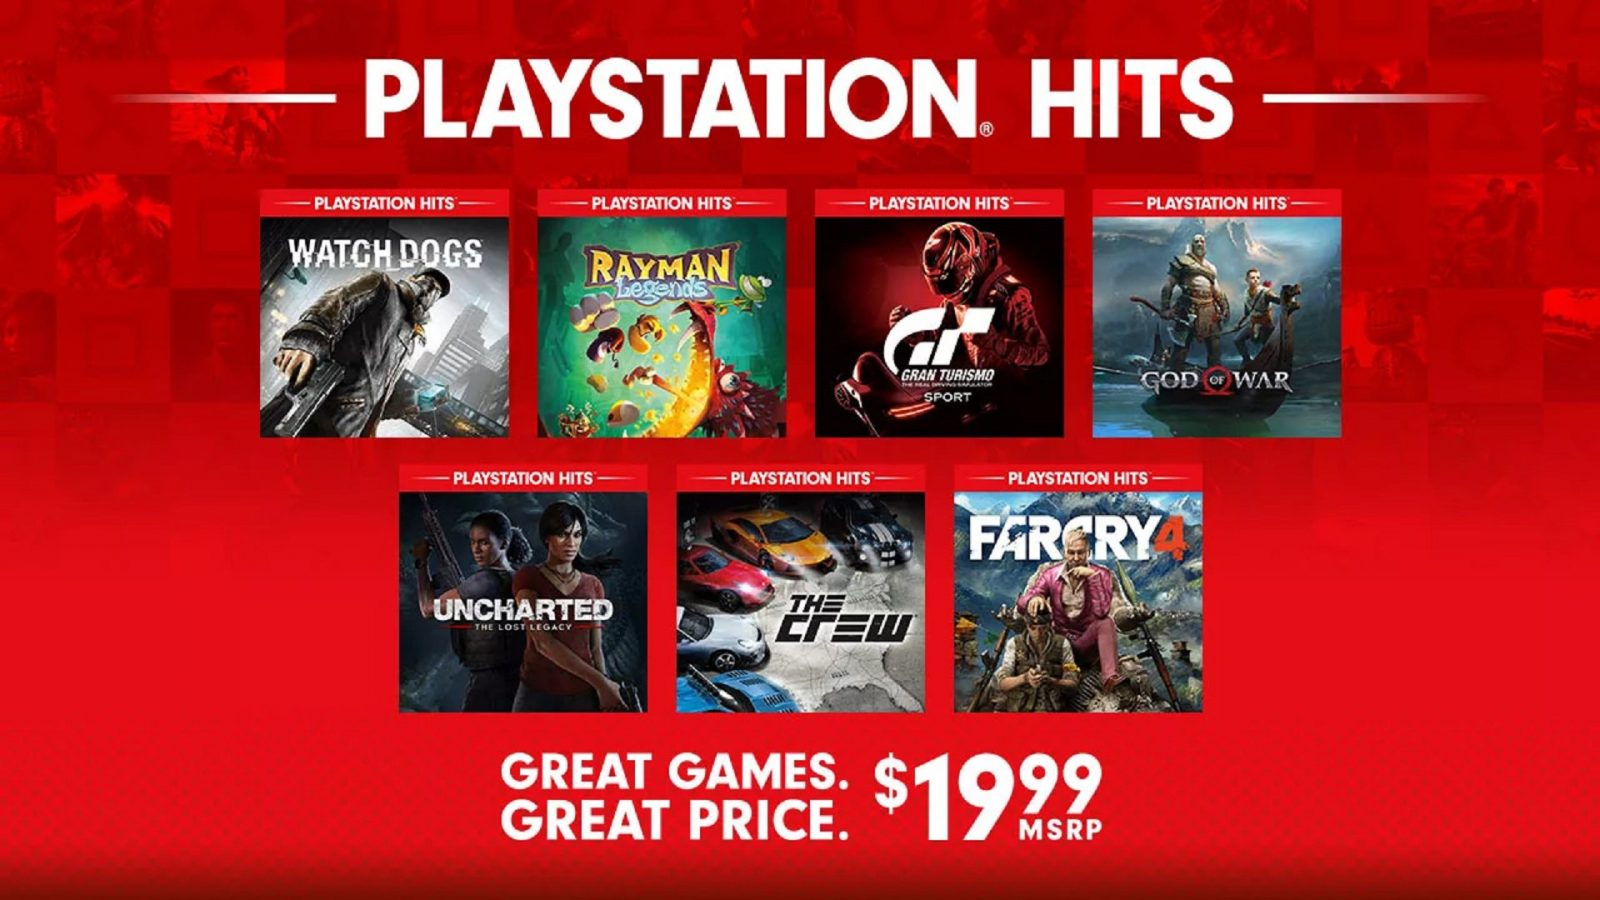 Seven More Games Added to PlayStation Hits Lineup